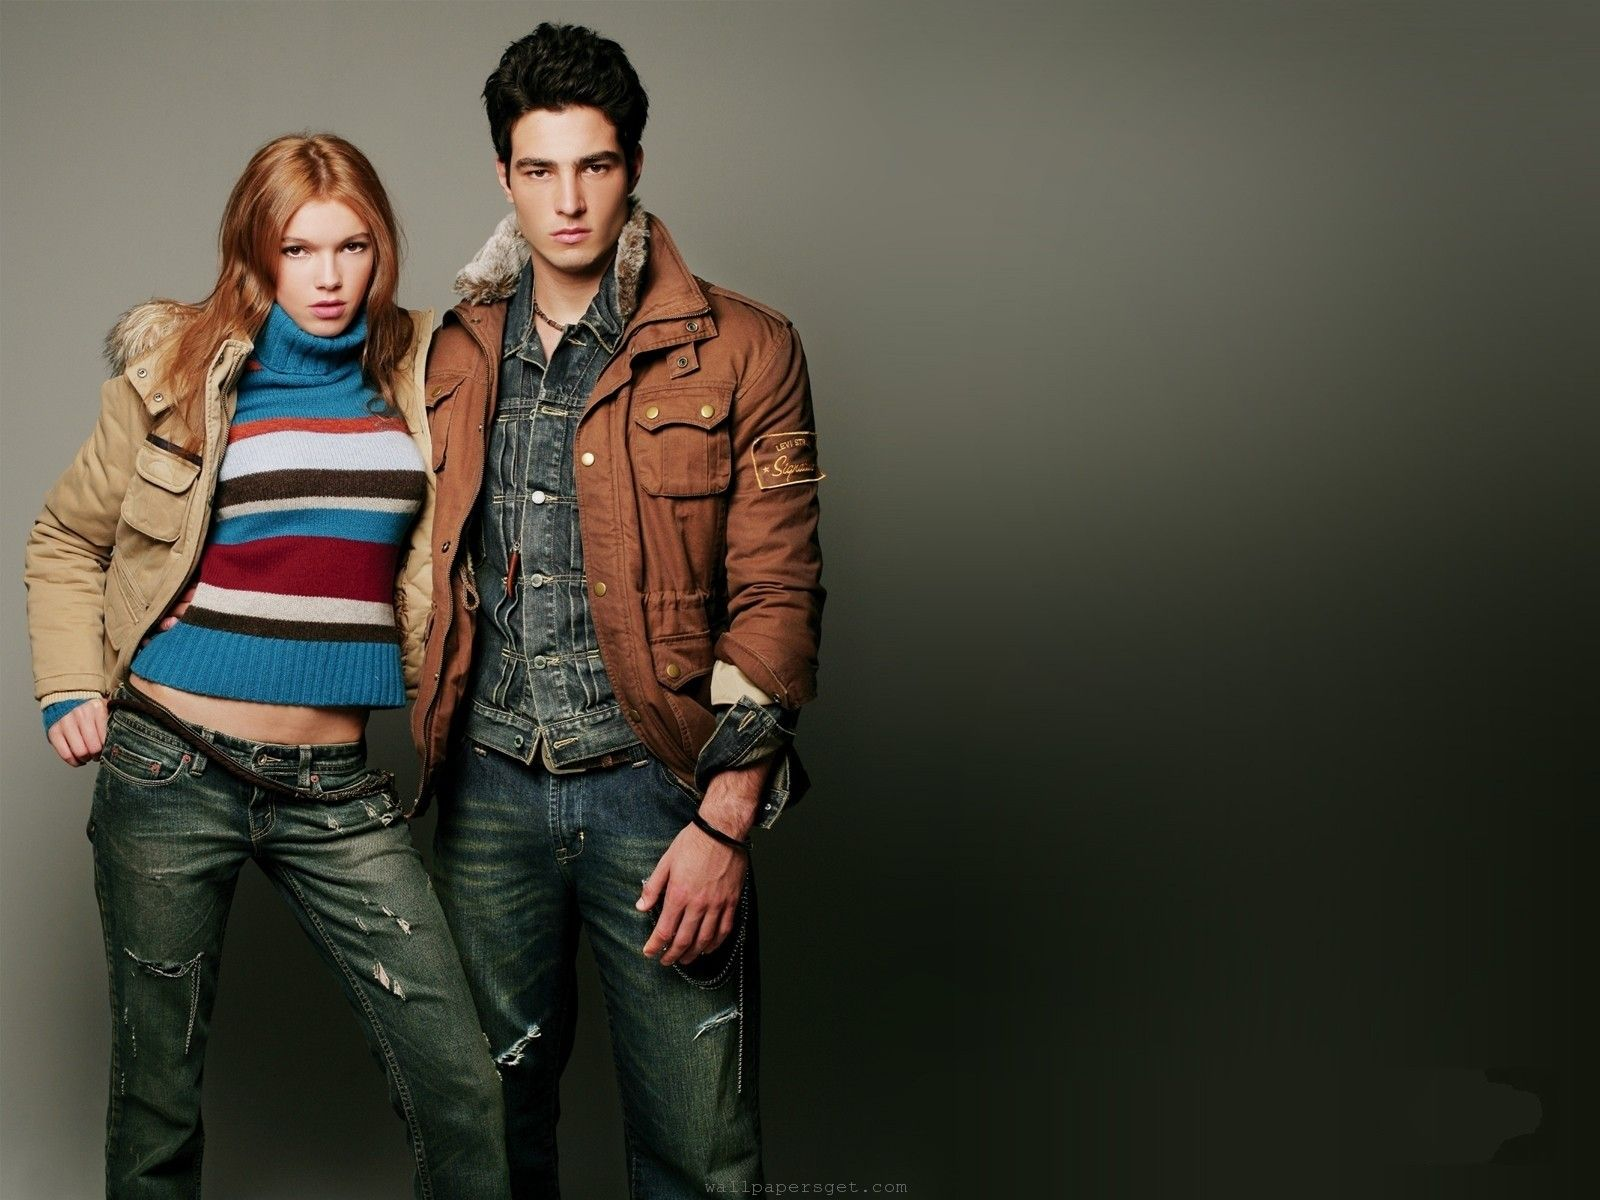 c2f1bb666 Levis Jeans Apparel Clothing Usa Brand Man Woman Hd Wallpapers